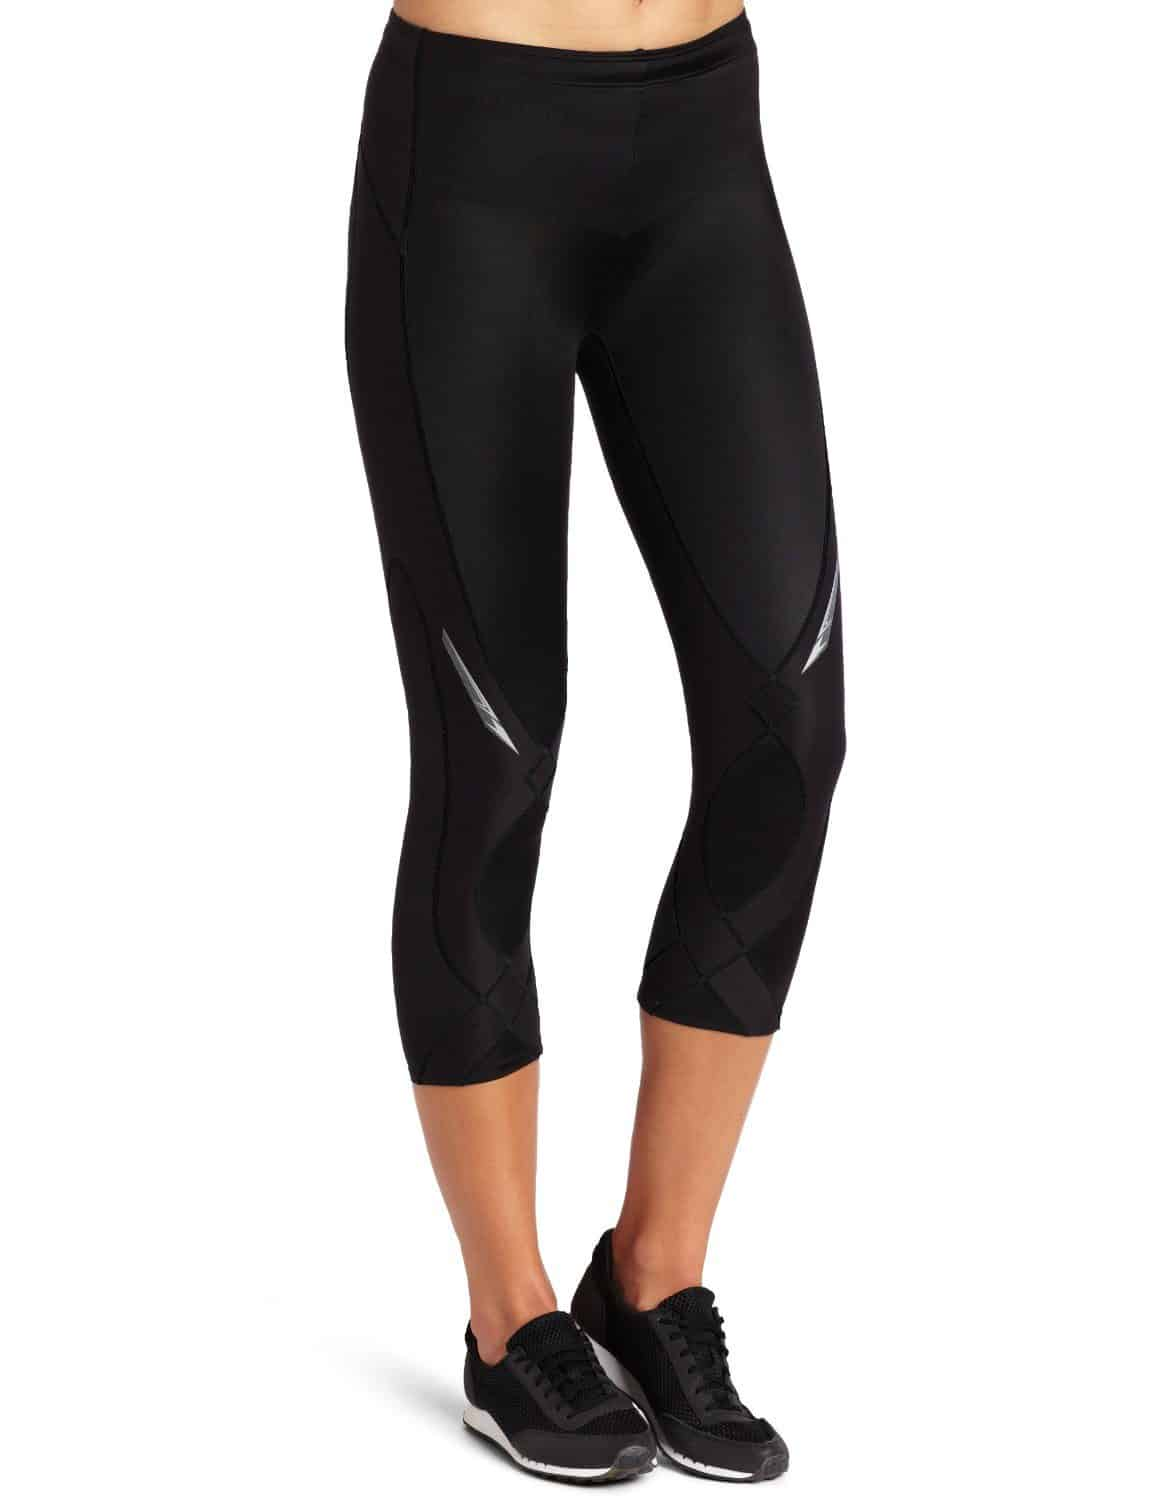 CW-X Women's 3/4 Length Stabilyx Tights review